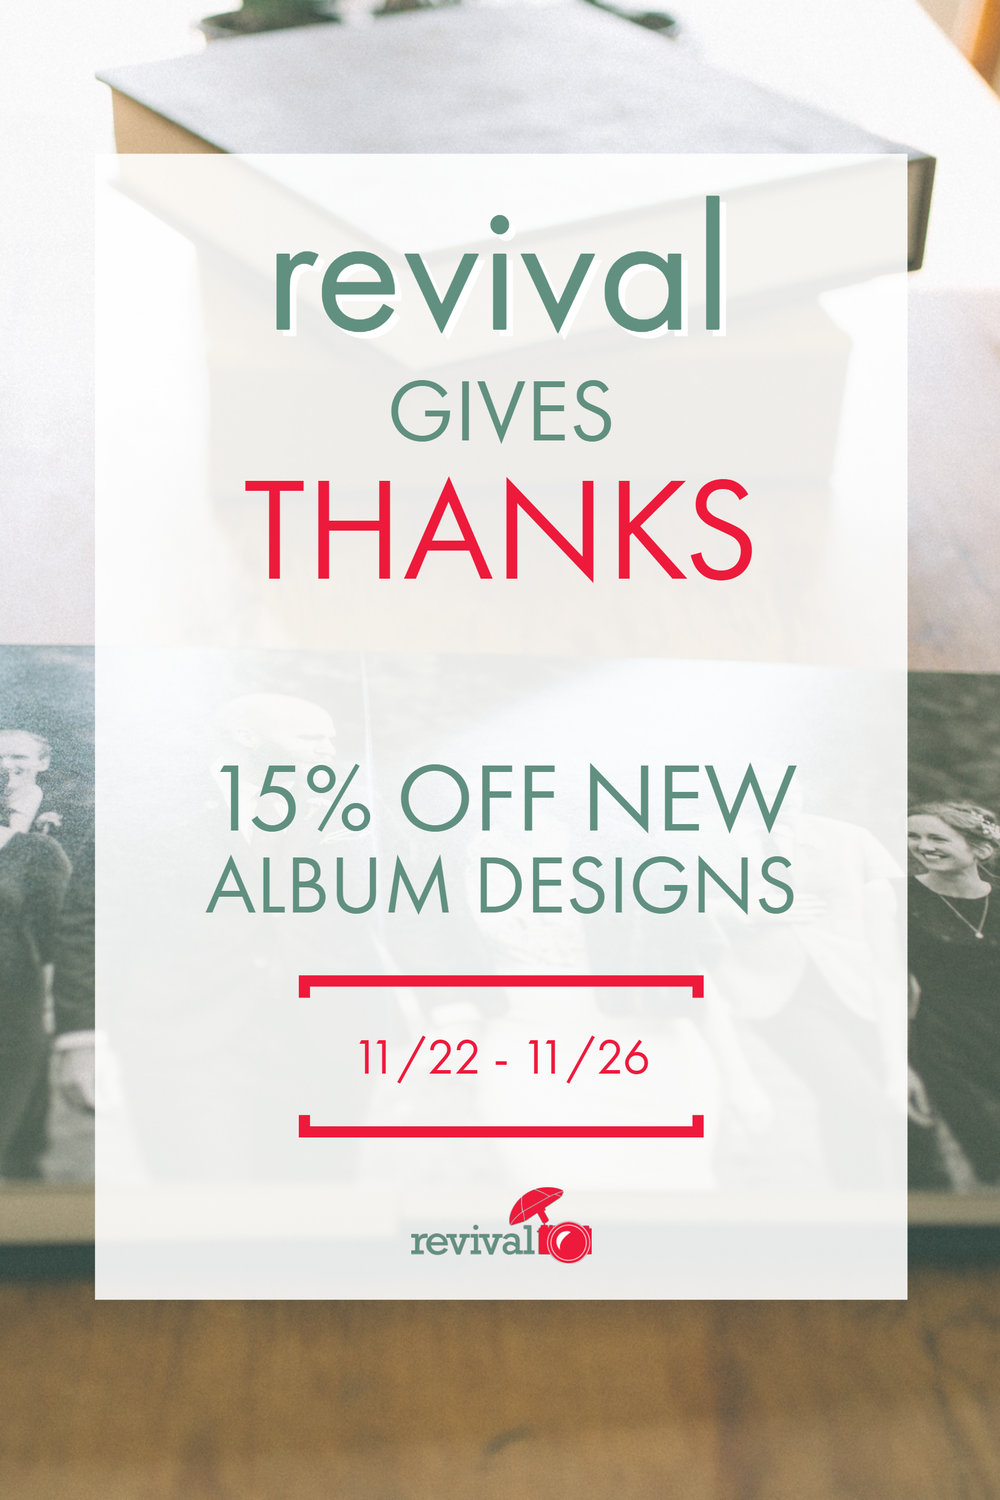 Revival Photography Album Sale Thankgiving Promo Black Friday Sale